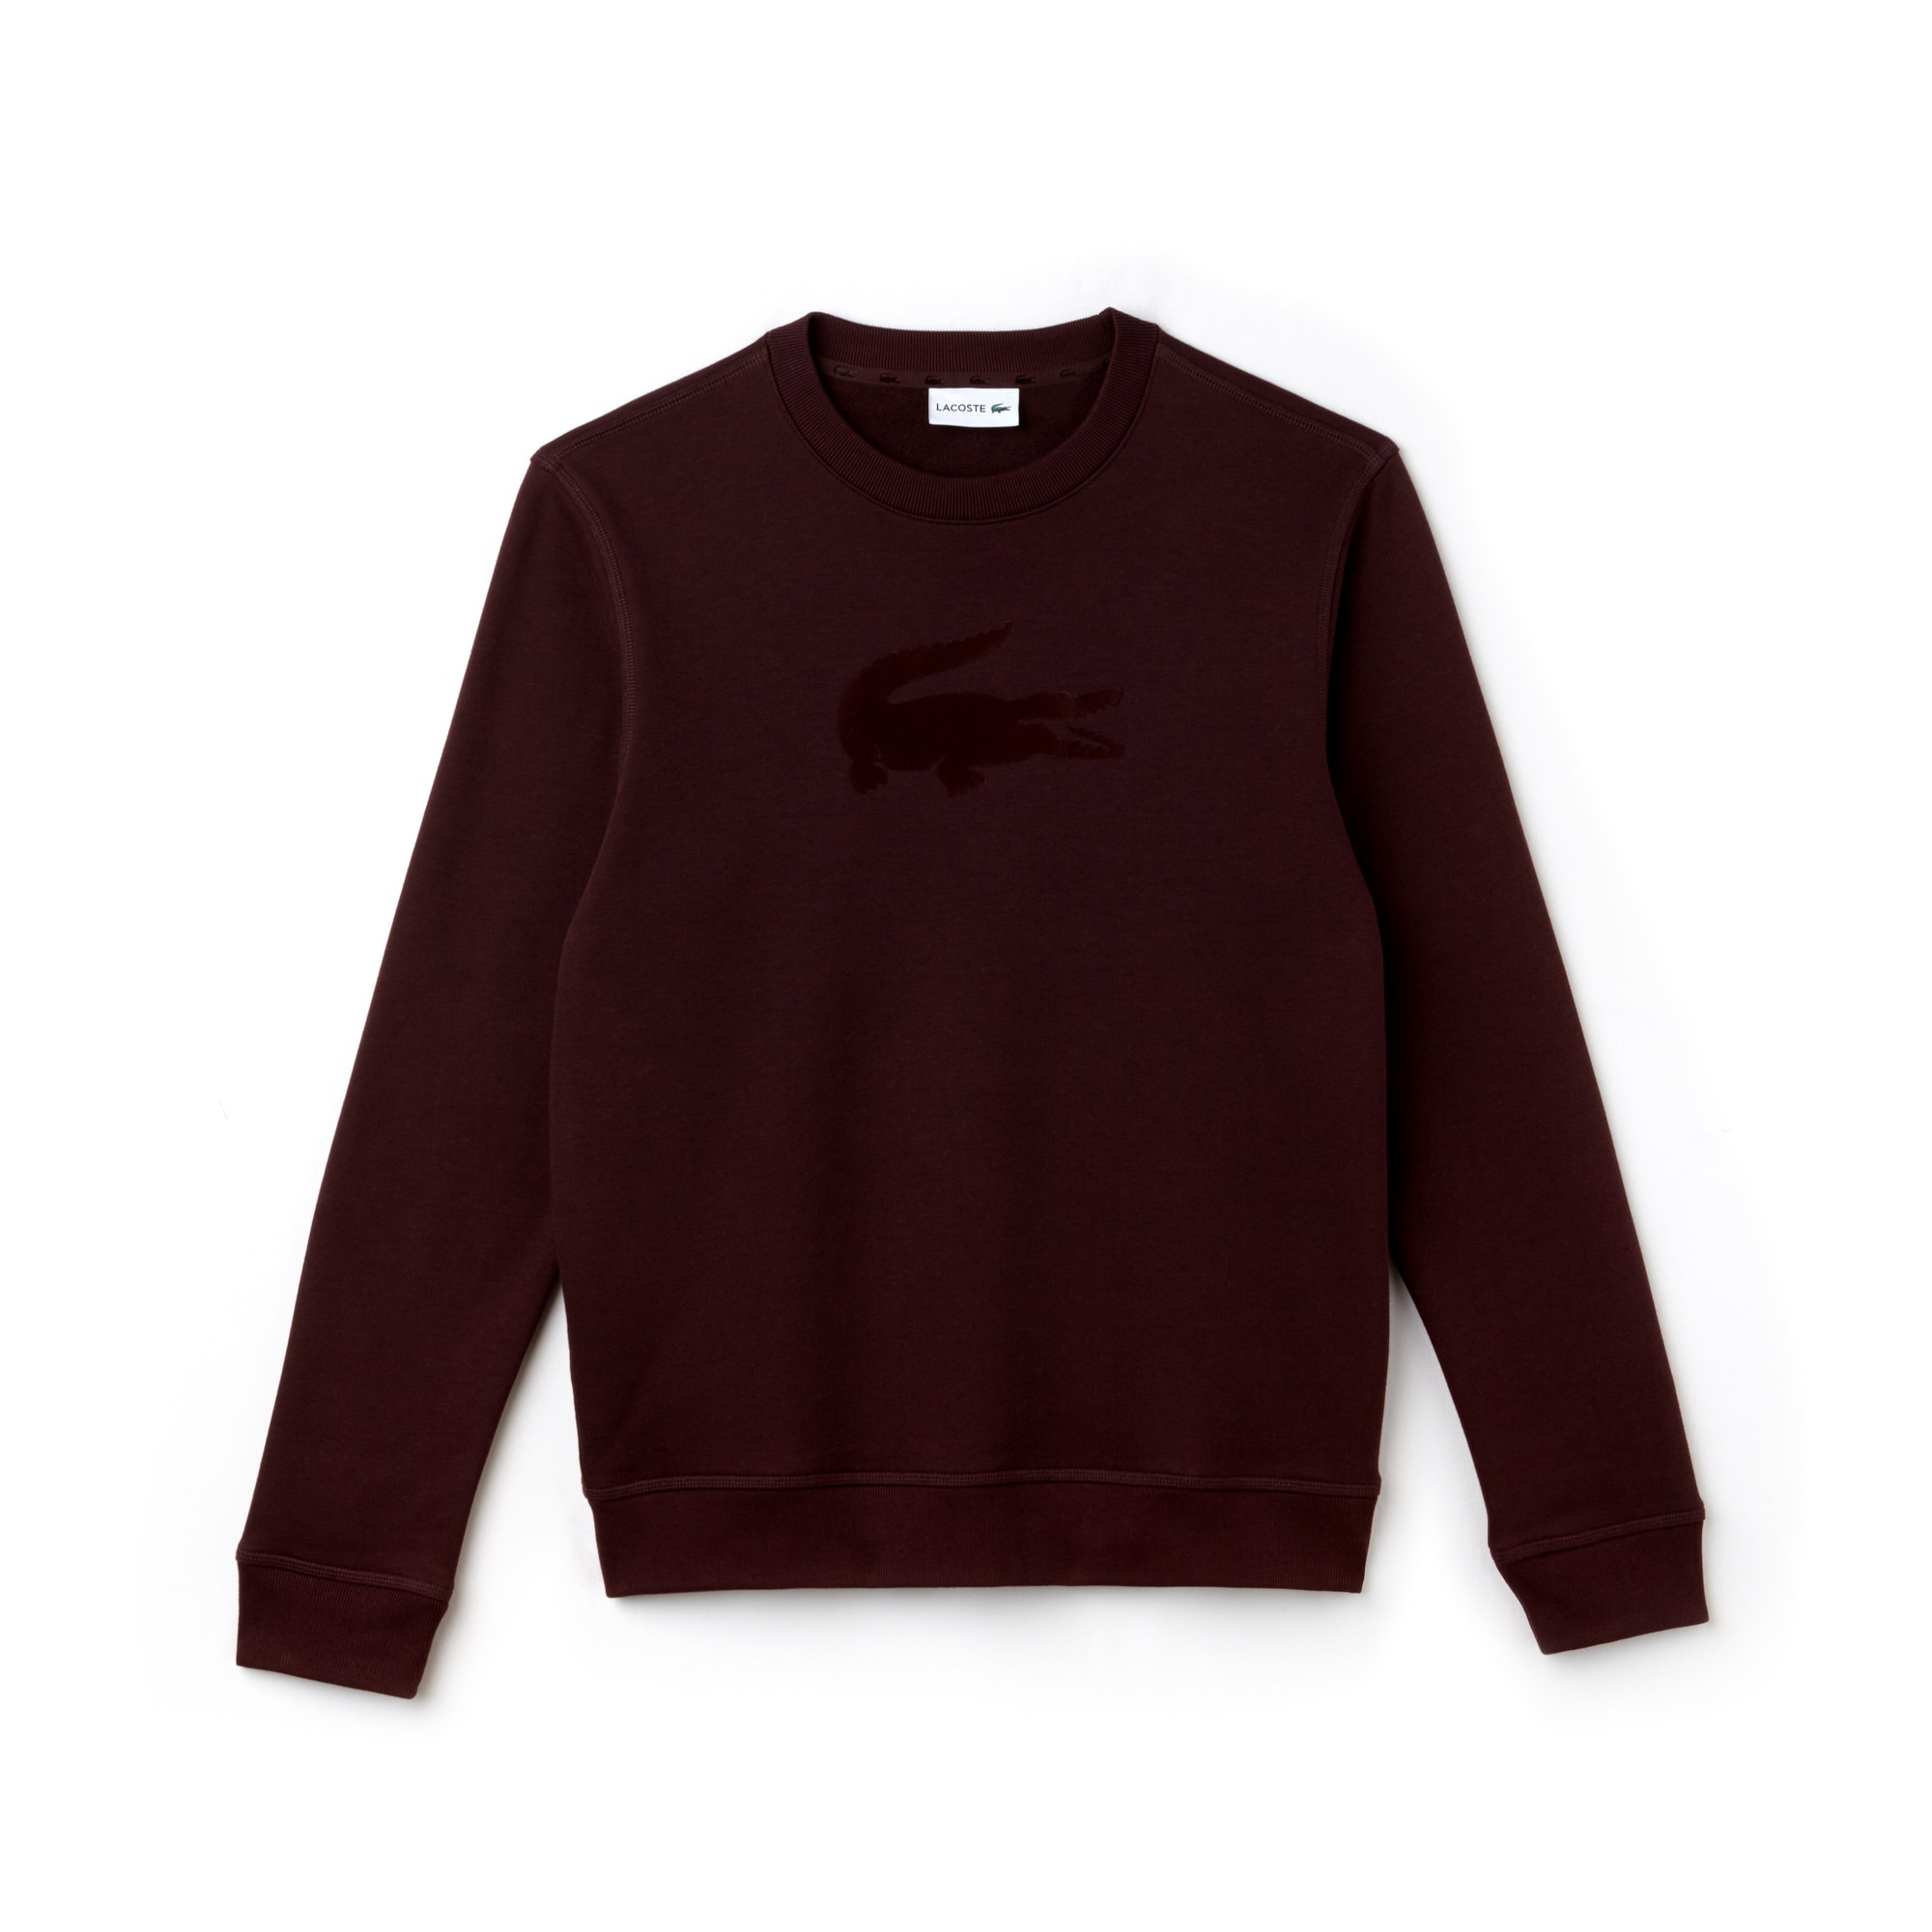 Men's Crew Neck Felt Crocodile Fleece Sweatshirt